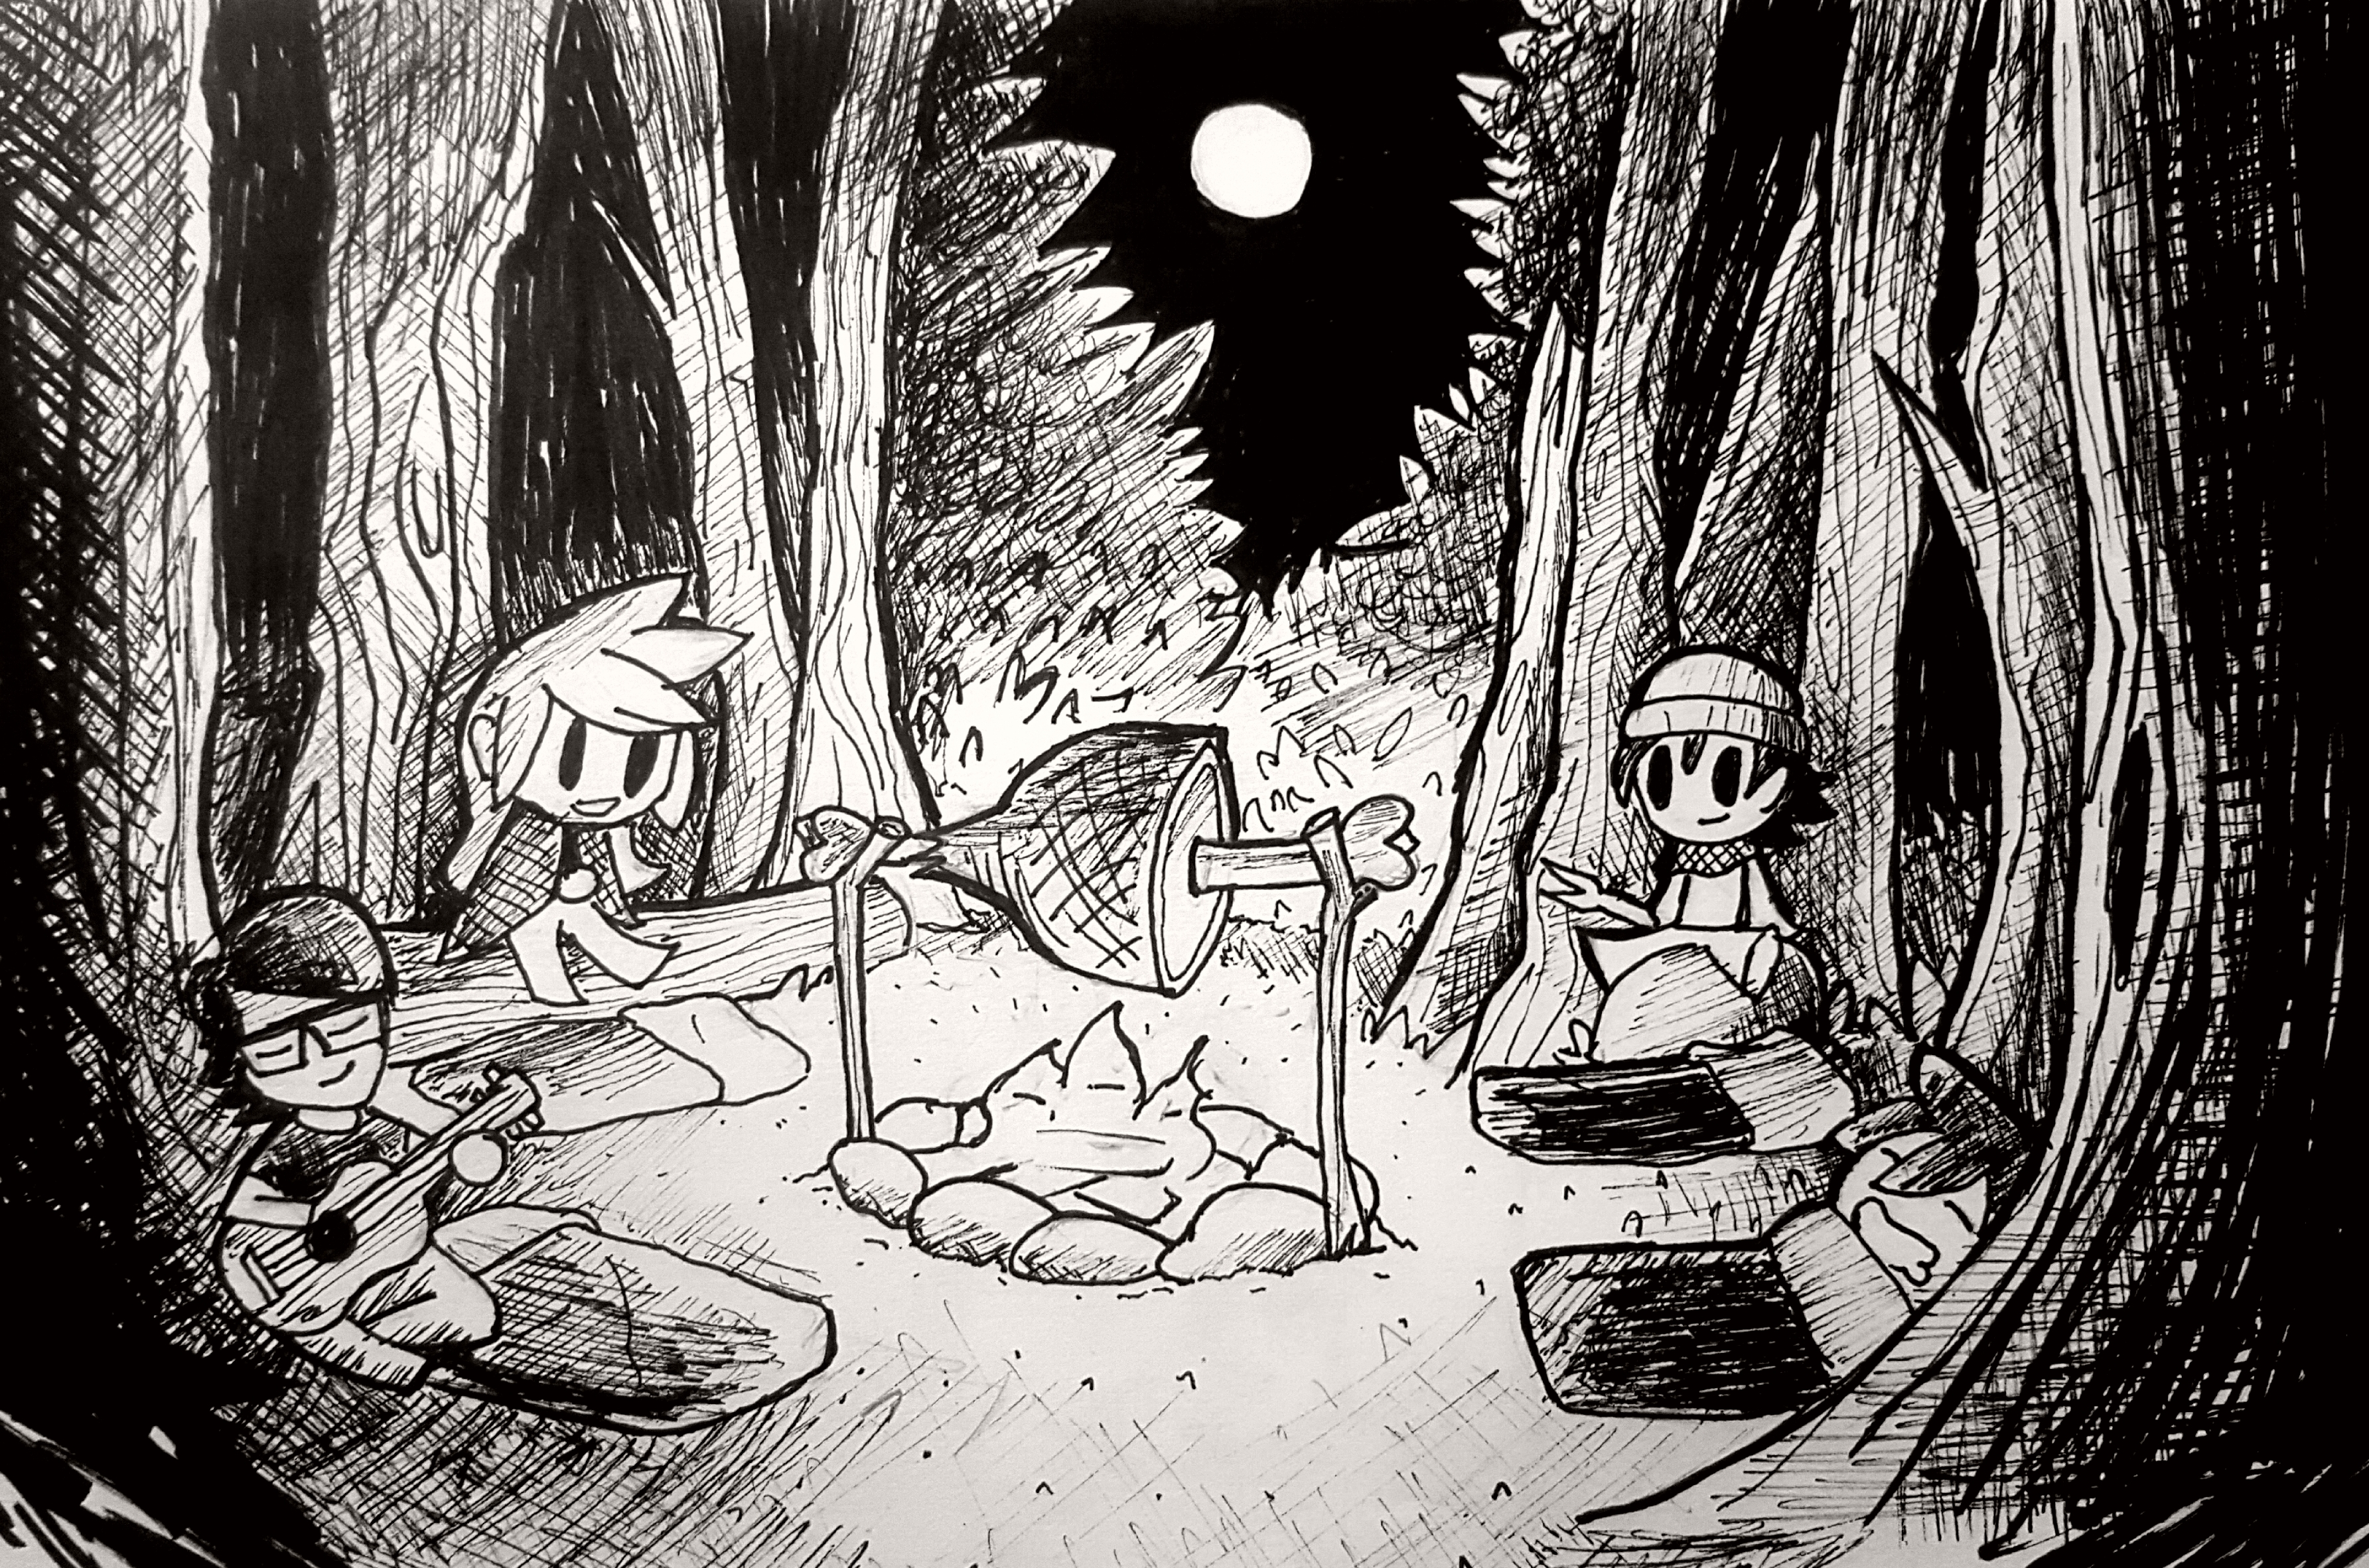 Inktober #3: Roasted